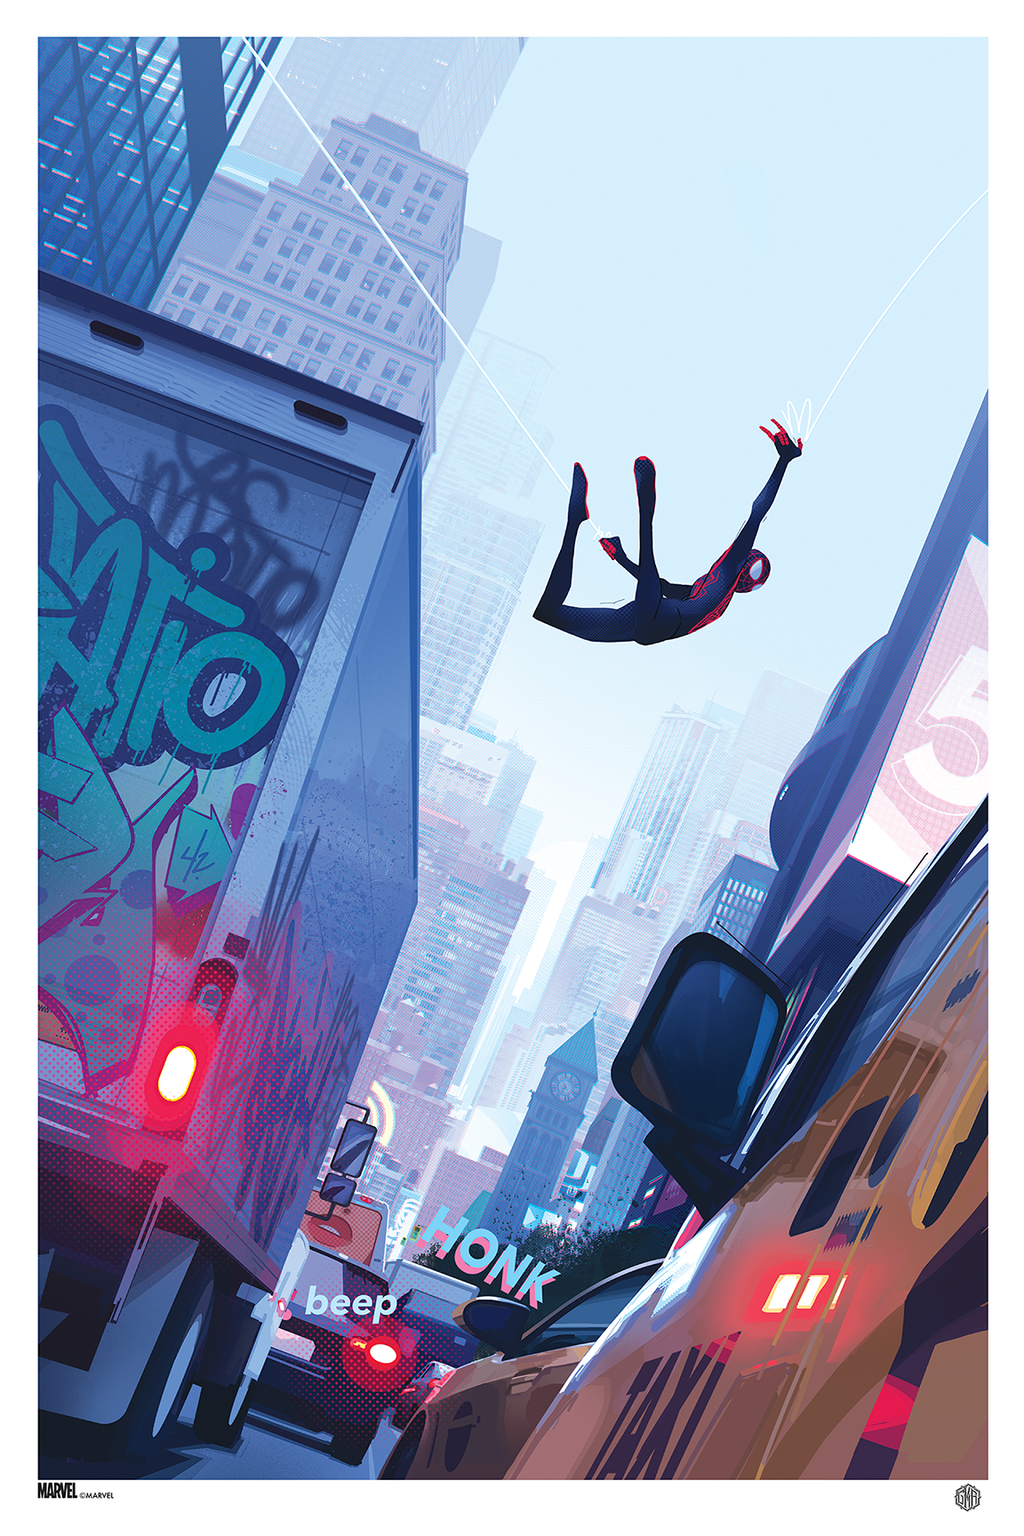 Miles Morales: Spider-Man #7 by Patrick O'Keefe